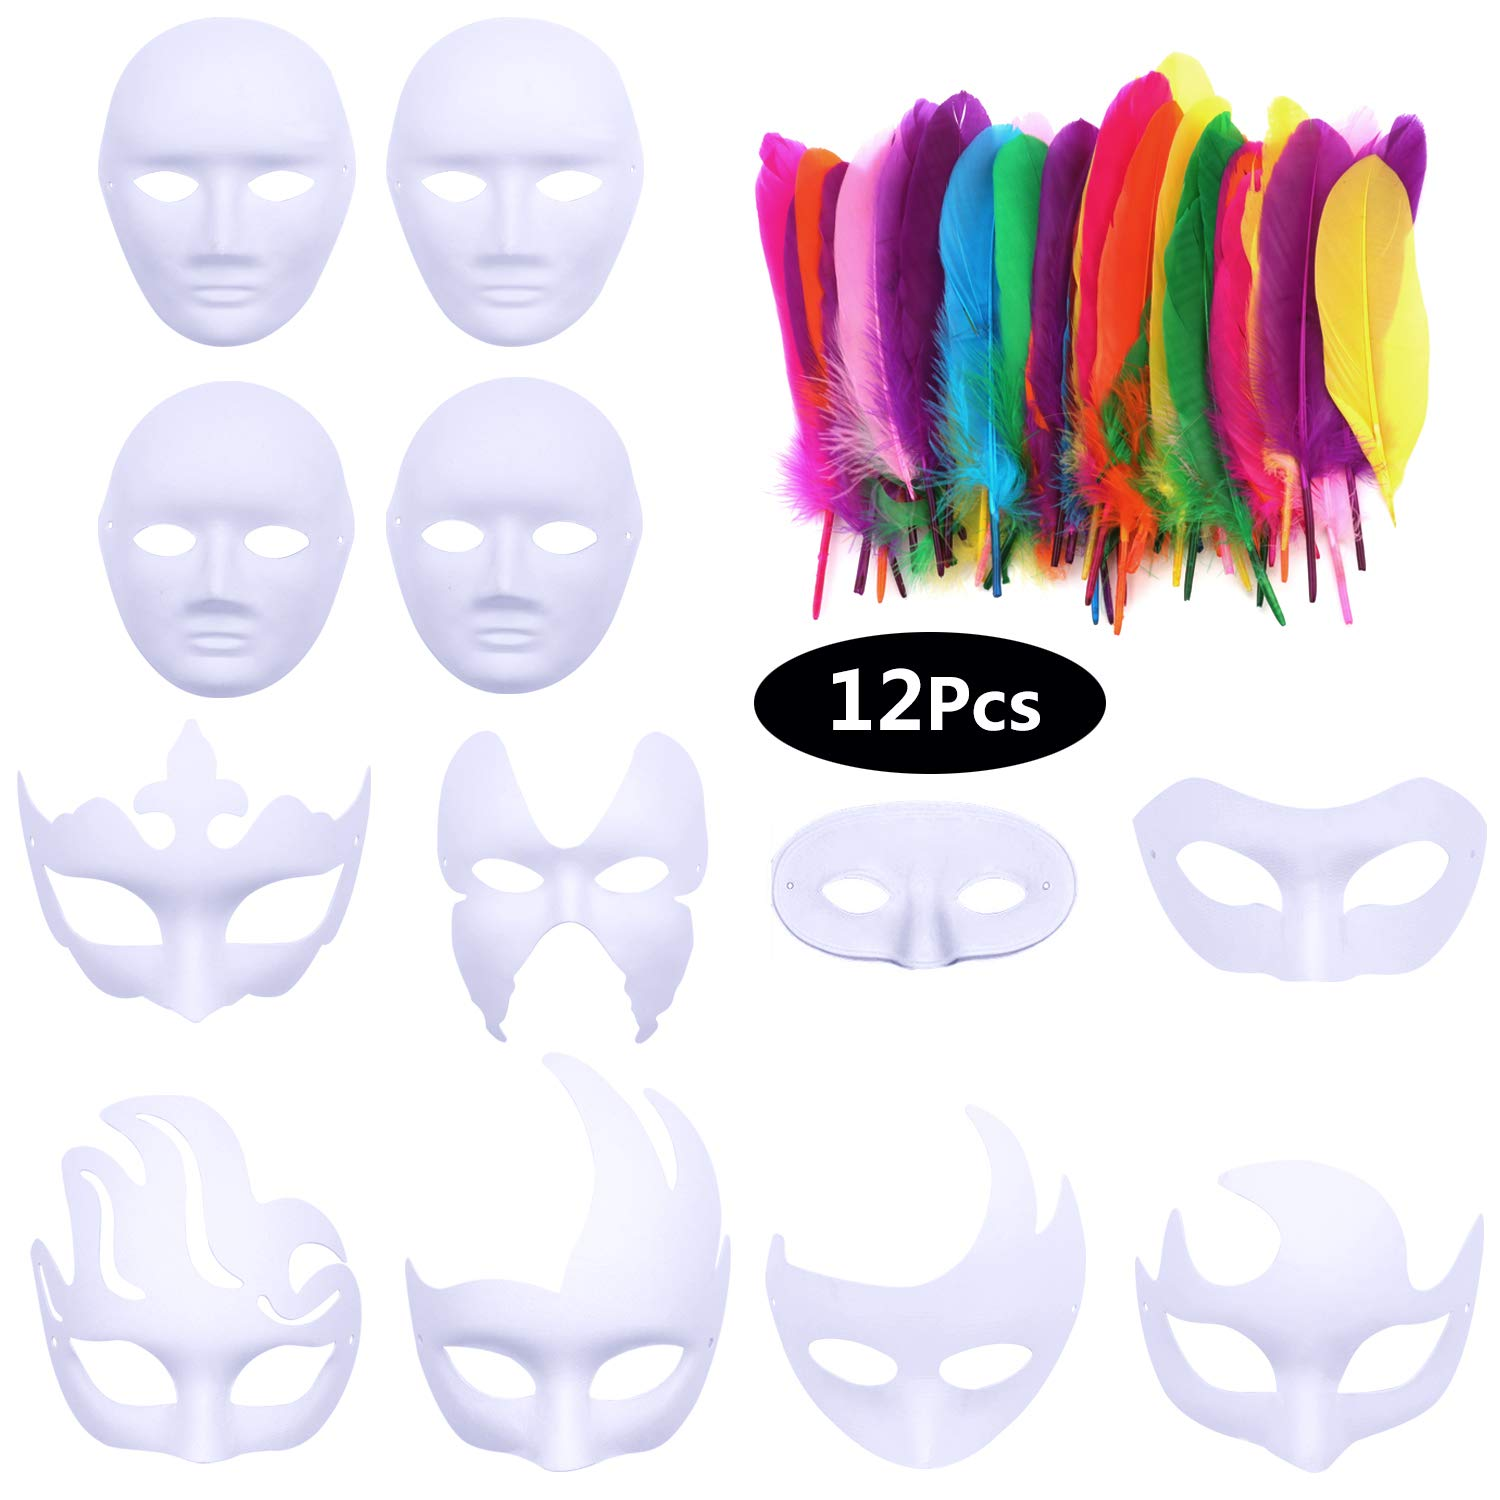 Aniwon White DIY Masks with Feathers, 12-Pack Paper Blank Plain Full Face Half Face Masks Natural Feathers Colors Set for Halloween Mardi Gras Cosplay Masquerade Dance Party